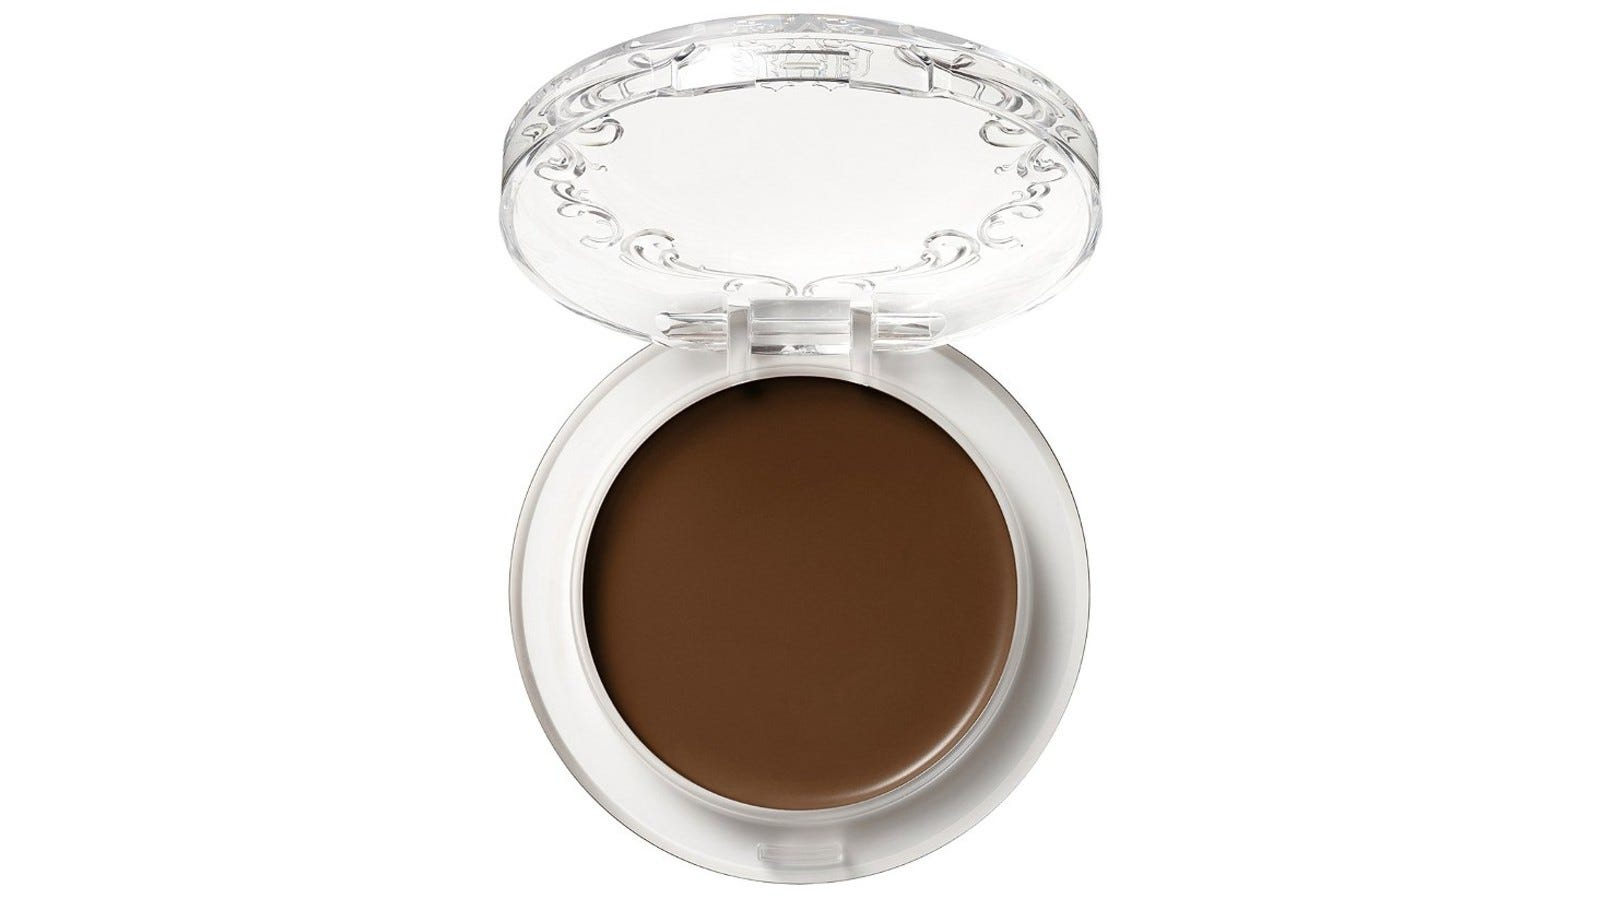 clear makeup compact with dark foundation shade